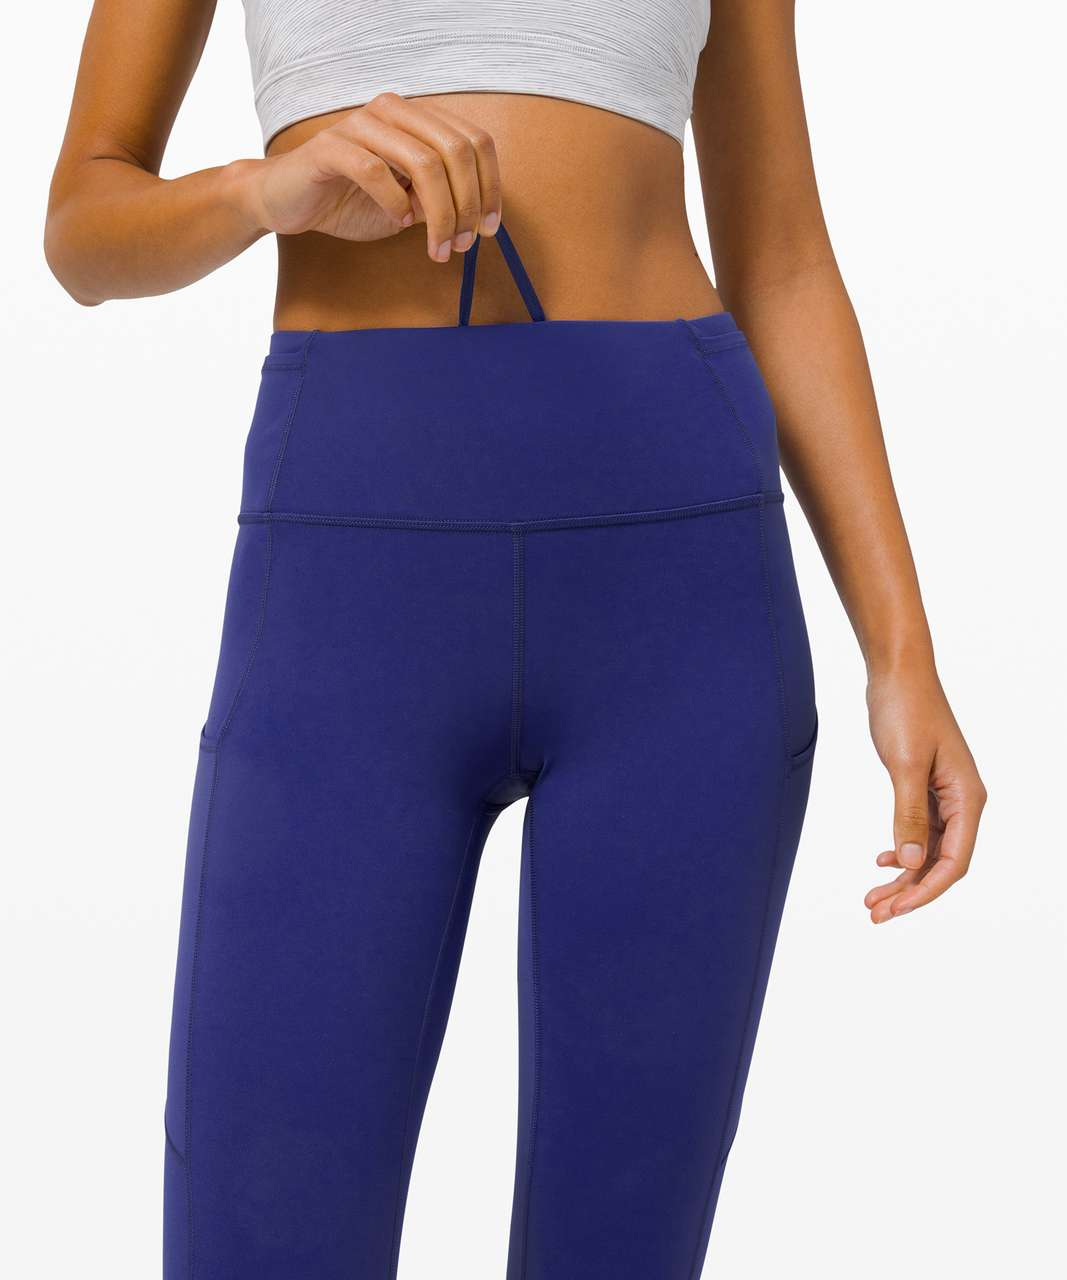 "Lululemon Fast and Free Tight 28"" *Non-Reflective - Larkspur"